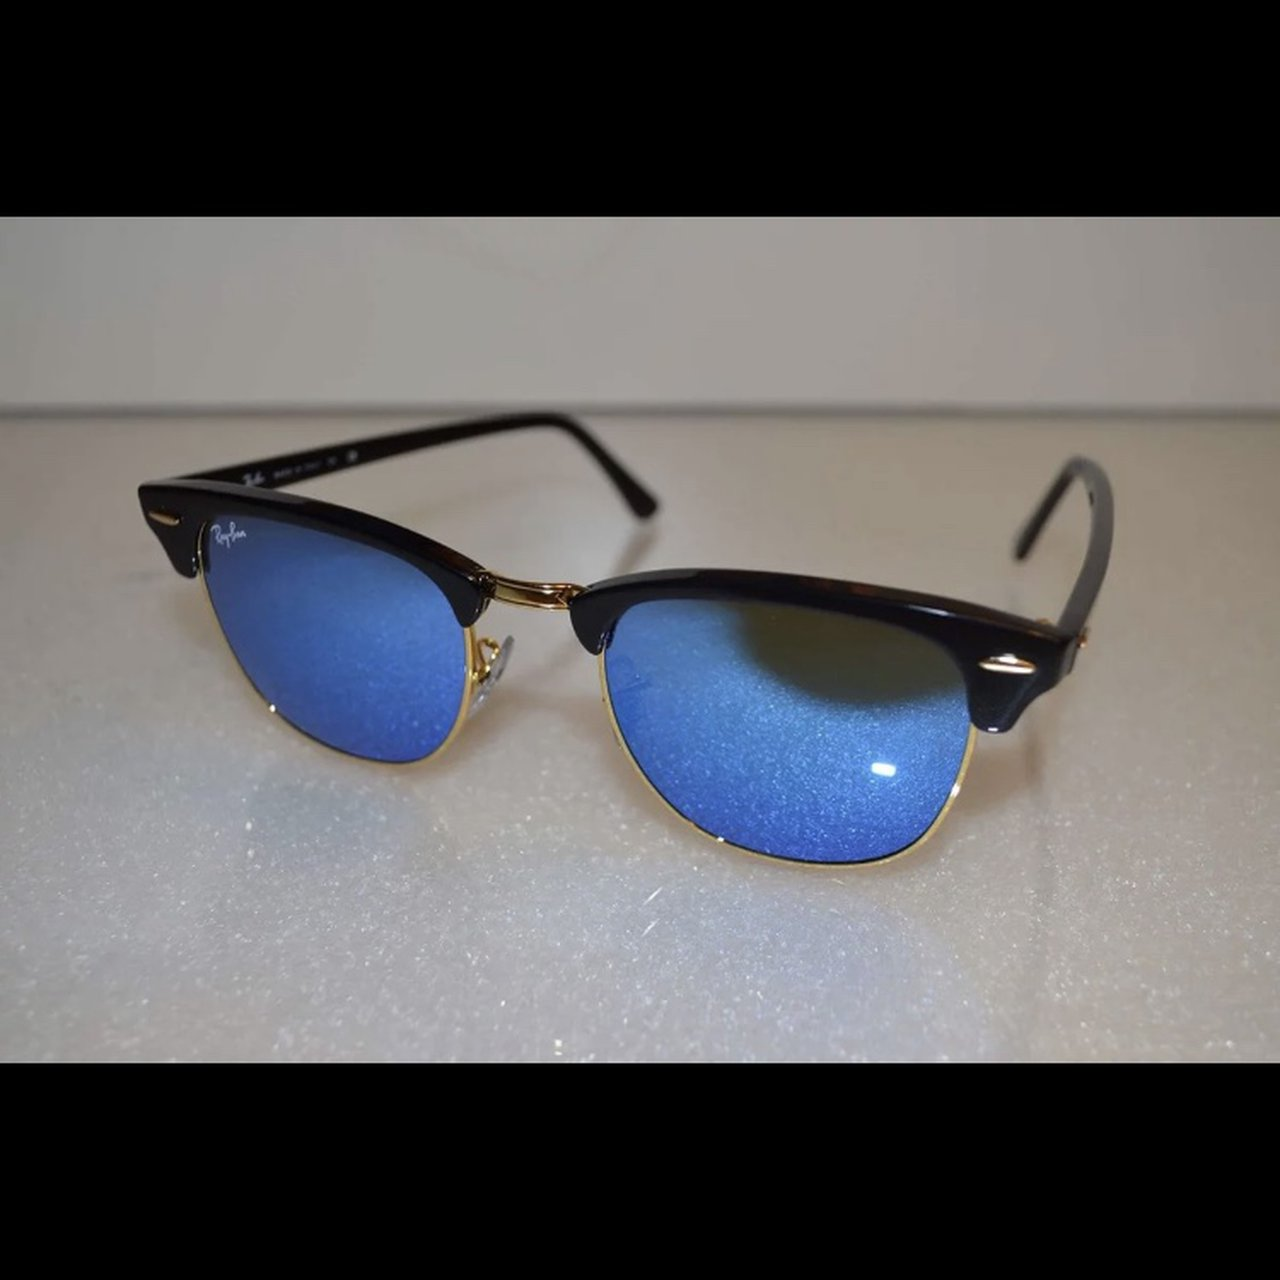 6821626b9ec Mirrored Clubmaster RayBan Sunglasses • Good condition of - Depop